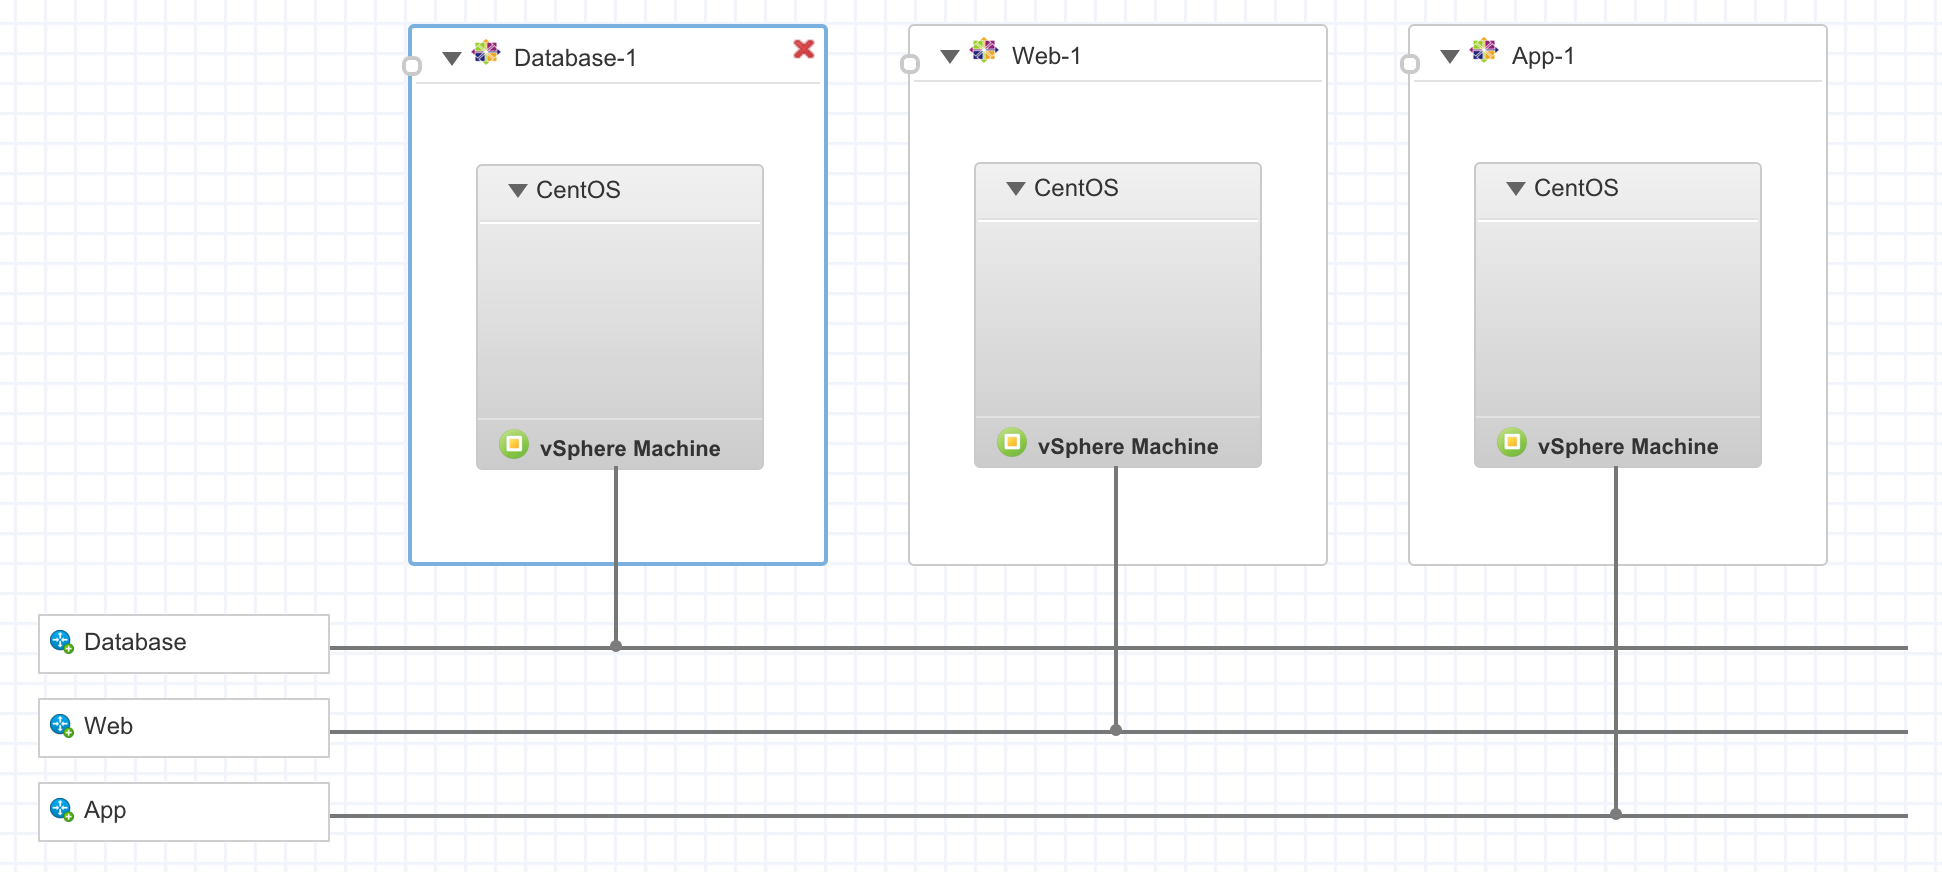 AWS Cloud Formation Templates in vRealize Automation - The